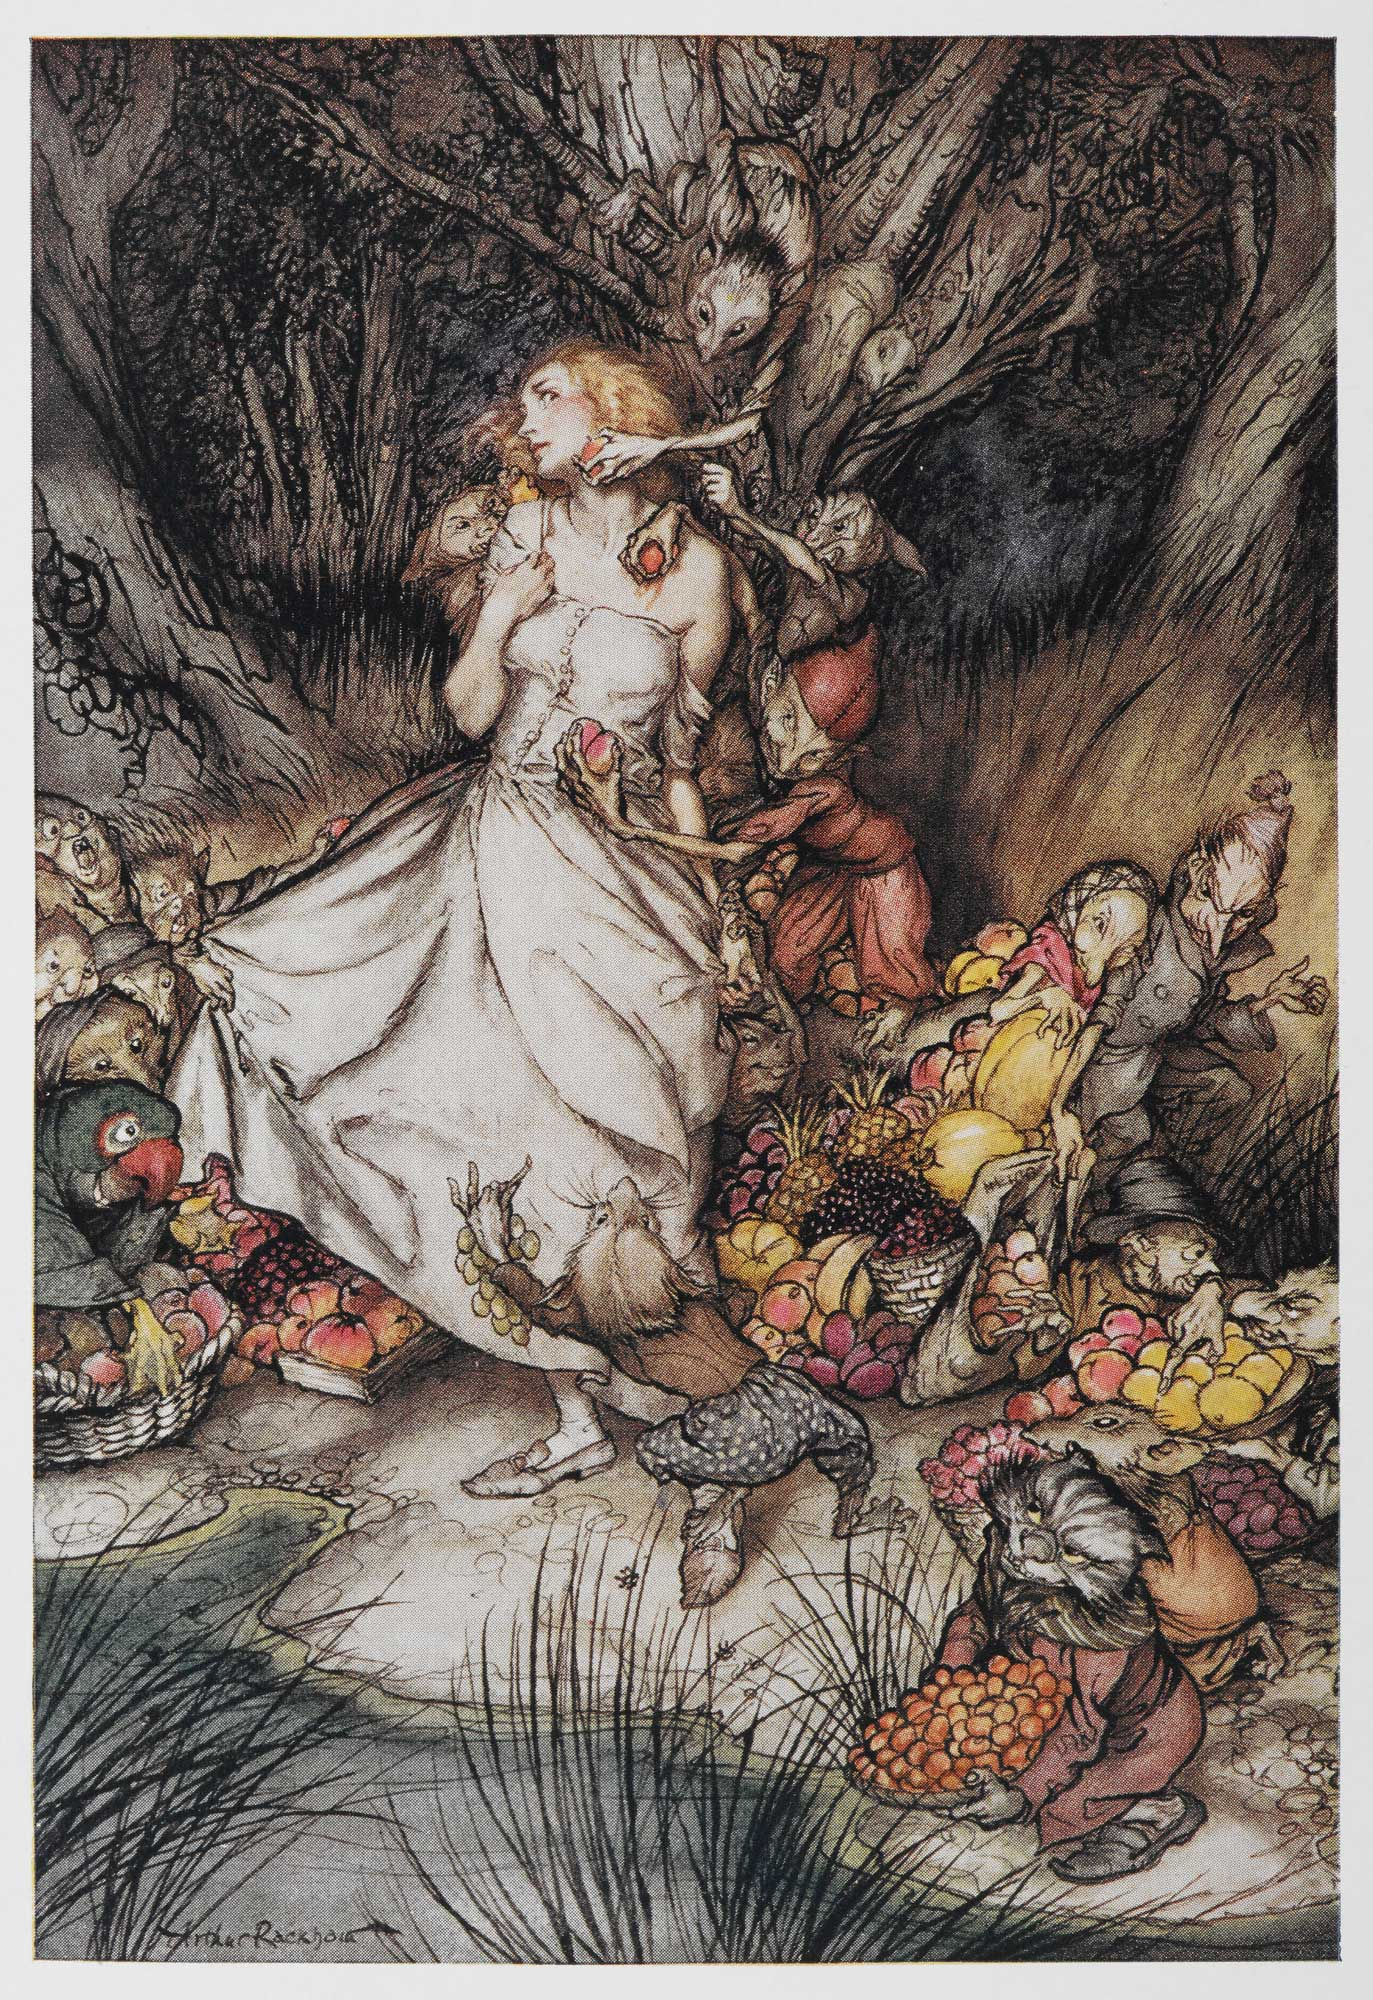 """The Goblin Market"" (1933) by Arthur Rackham"